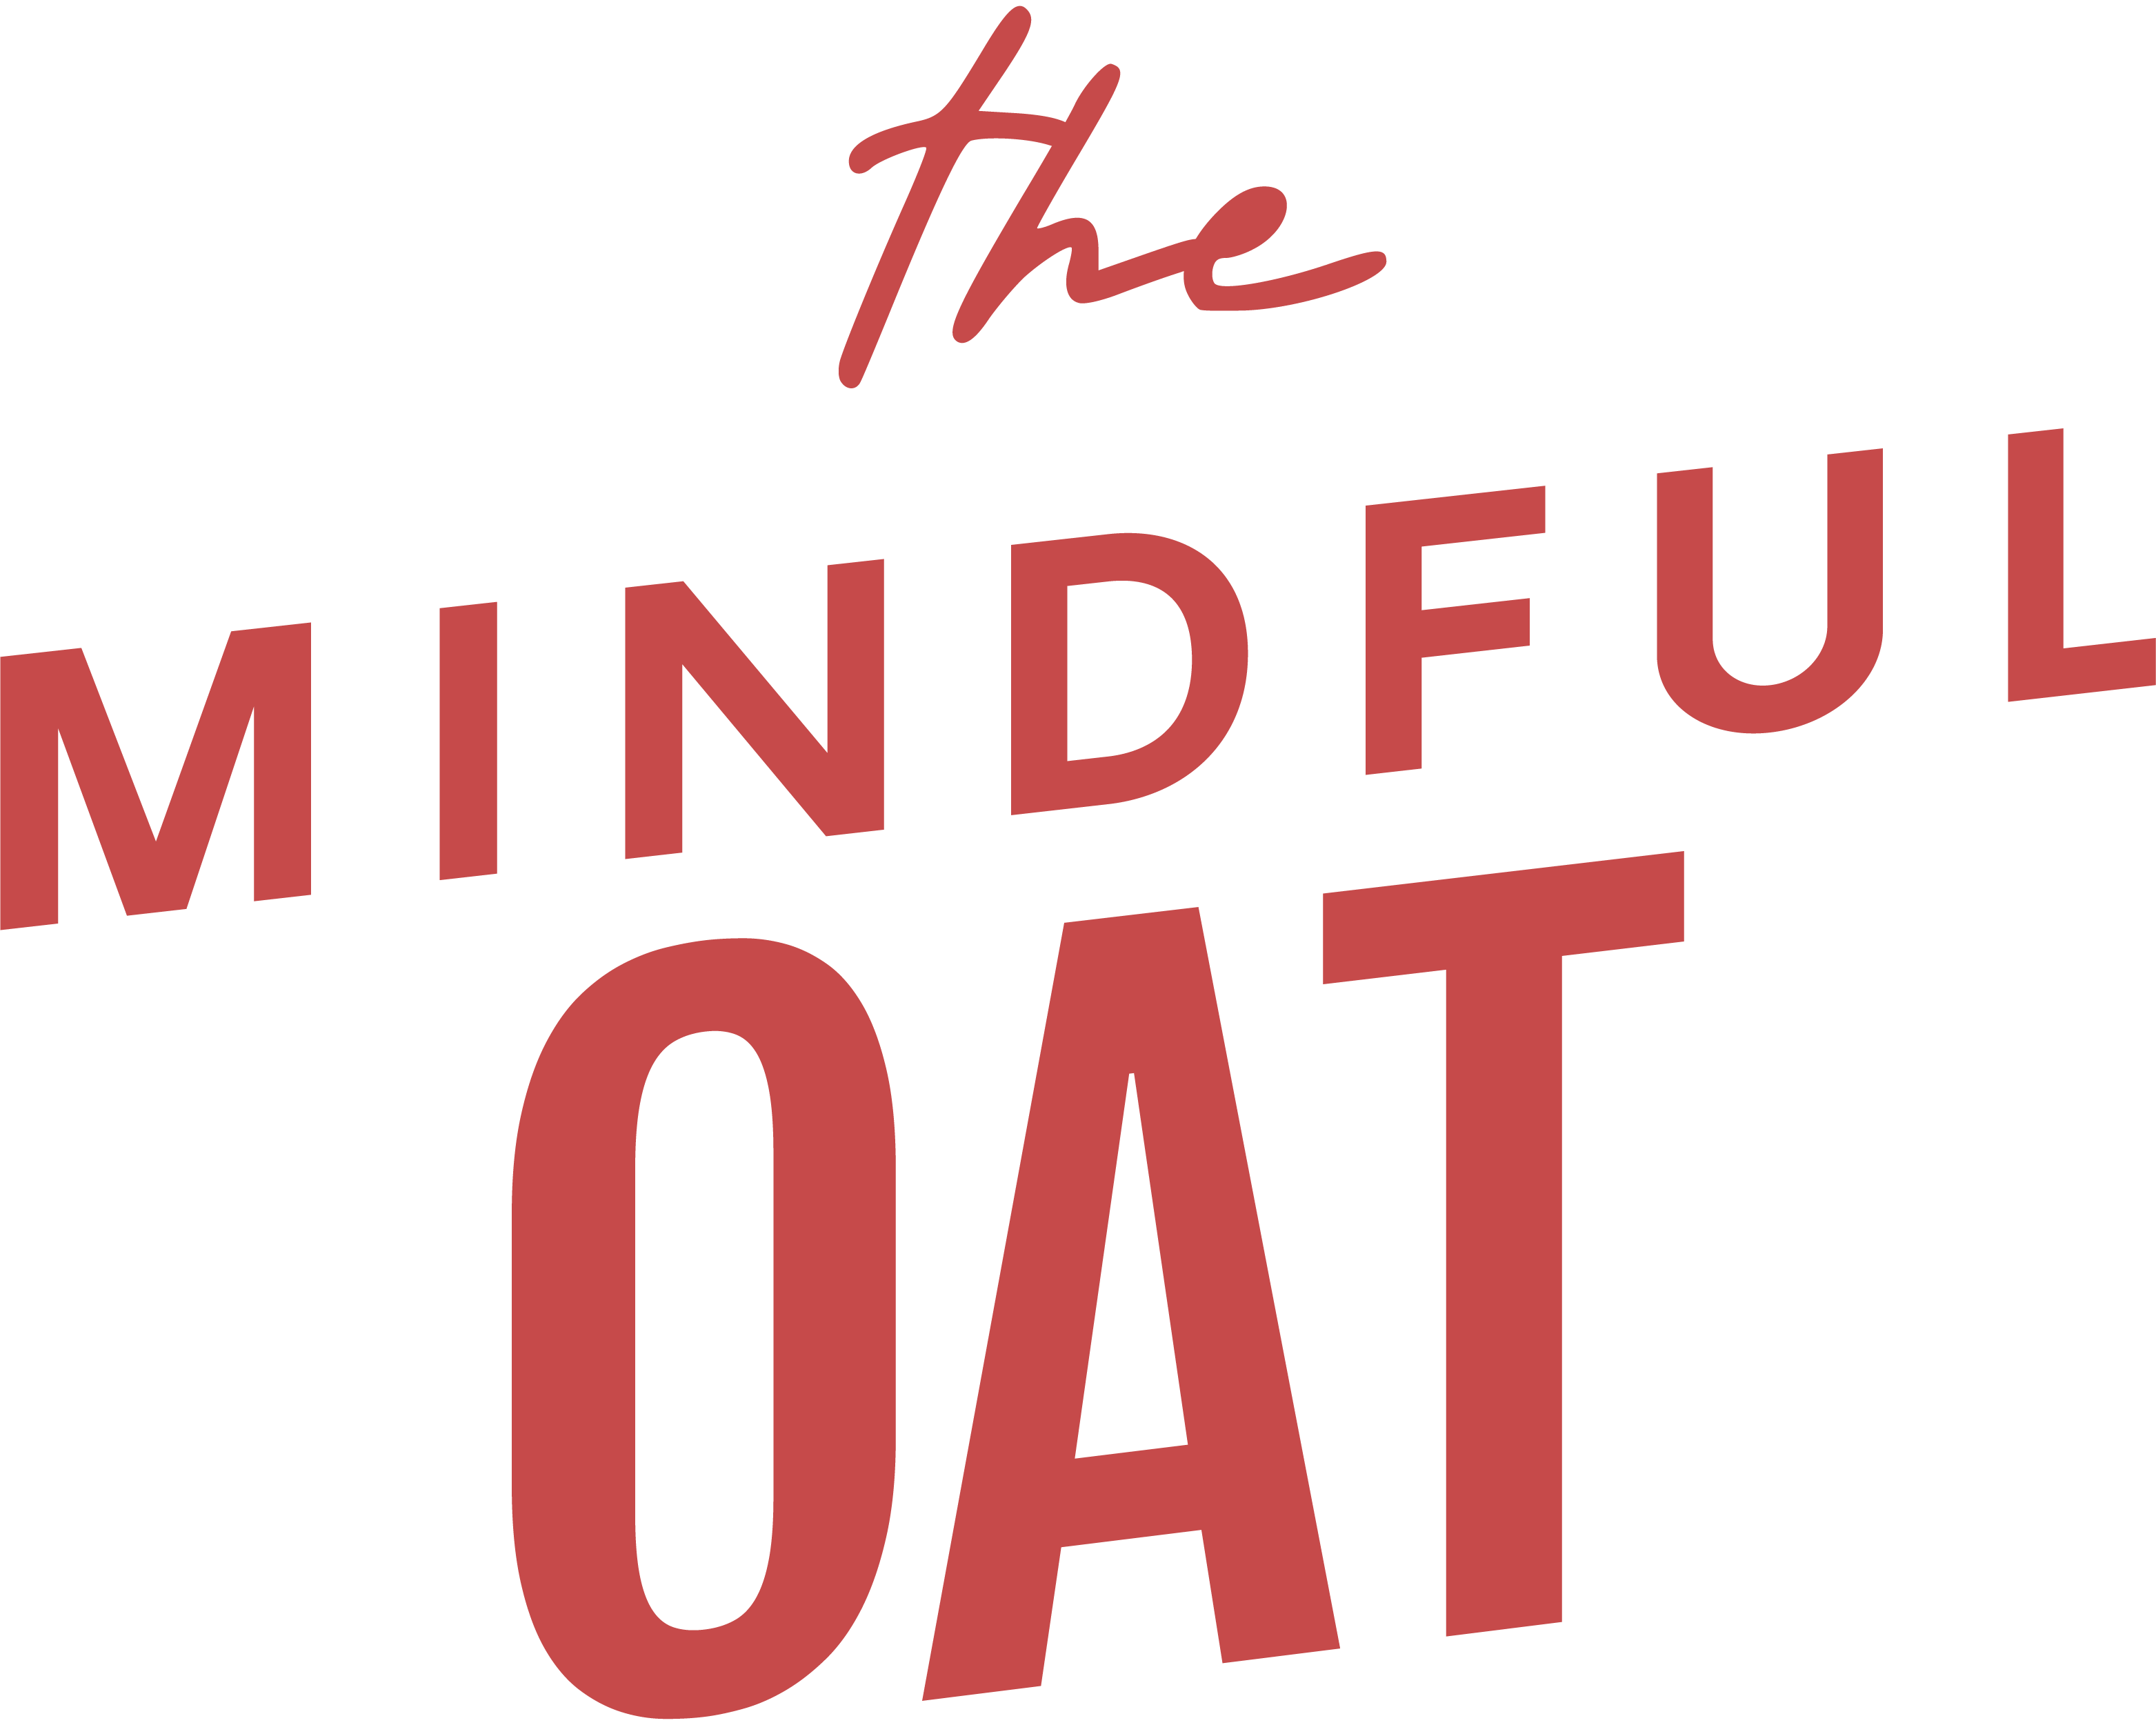 the-mindful-oat-logo.png